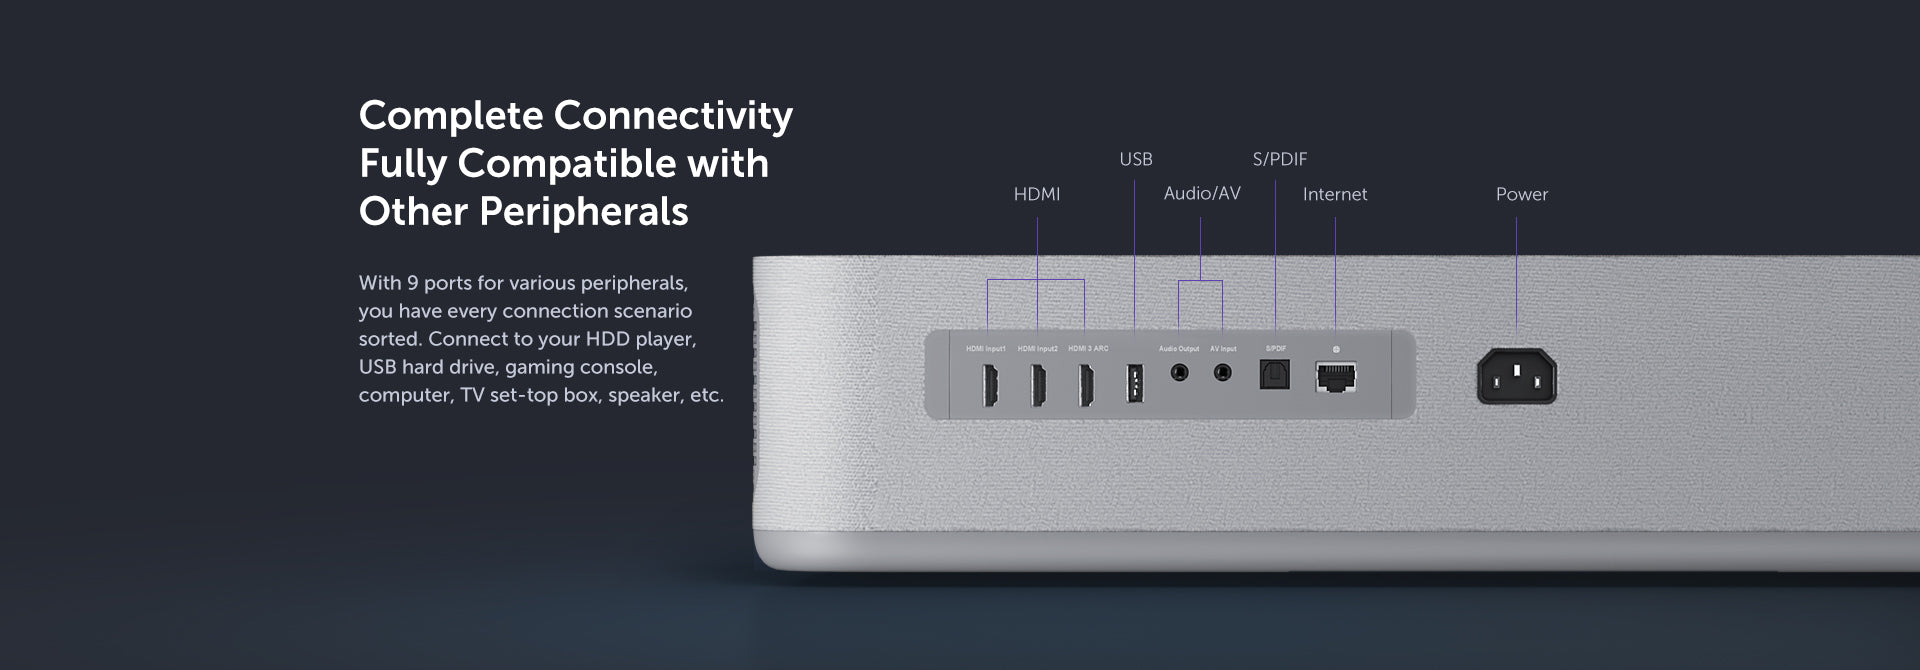 VAVA 4k projector full connectivity